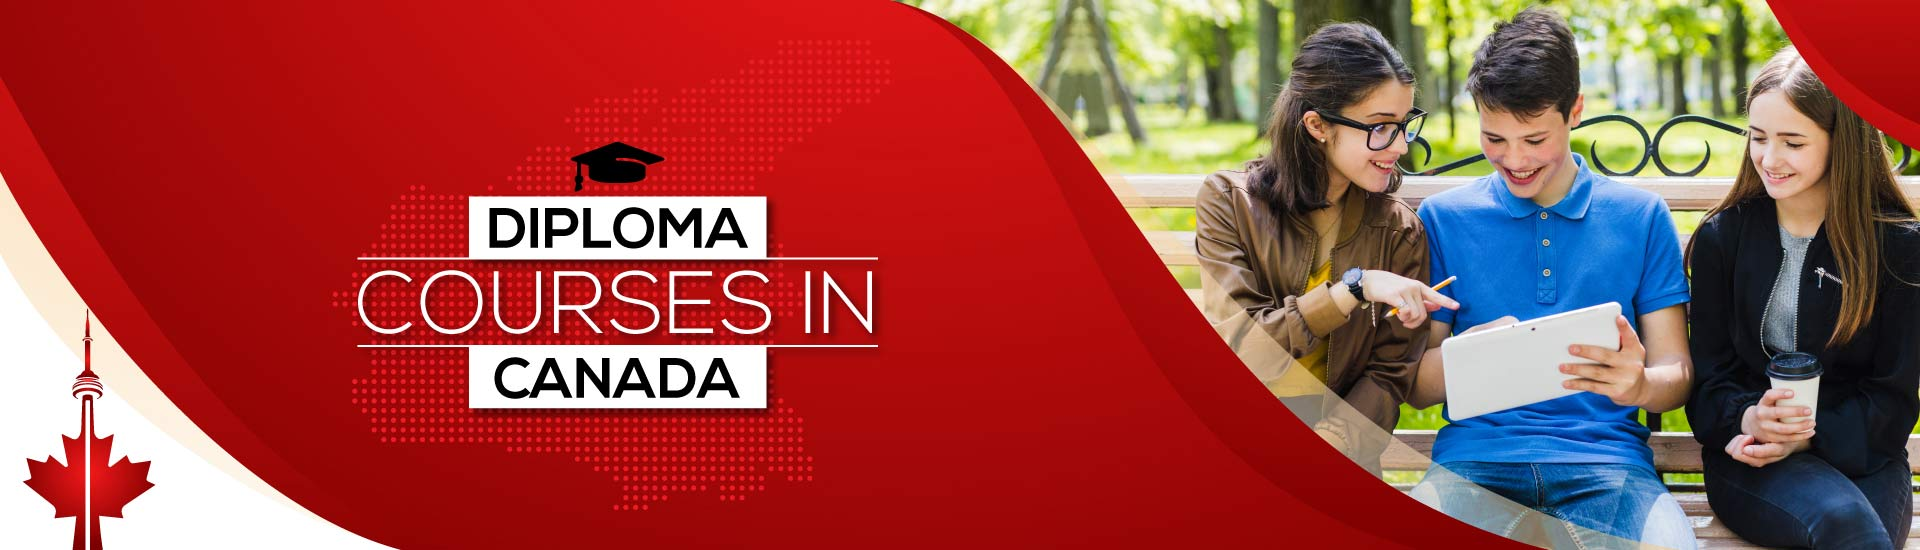 Diploma Courses in Canada